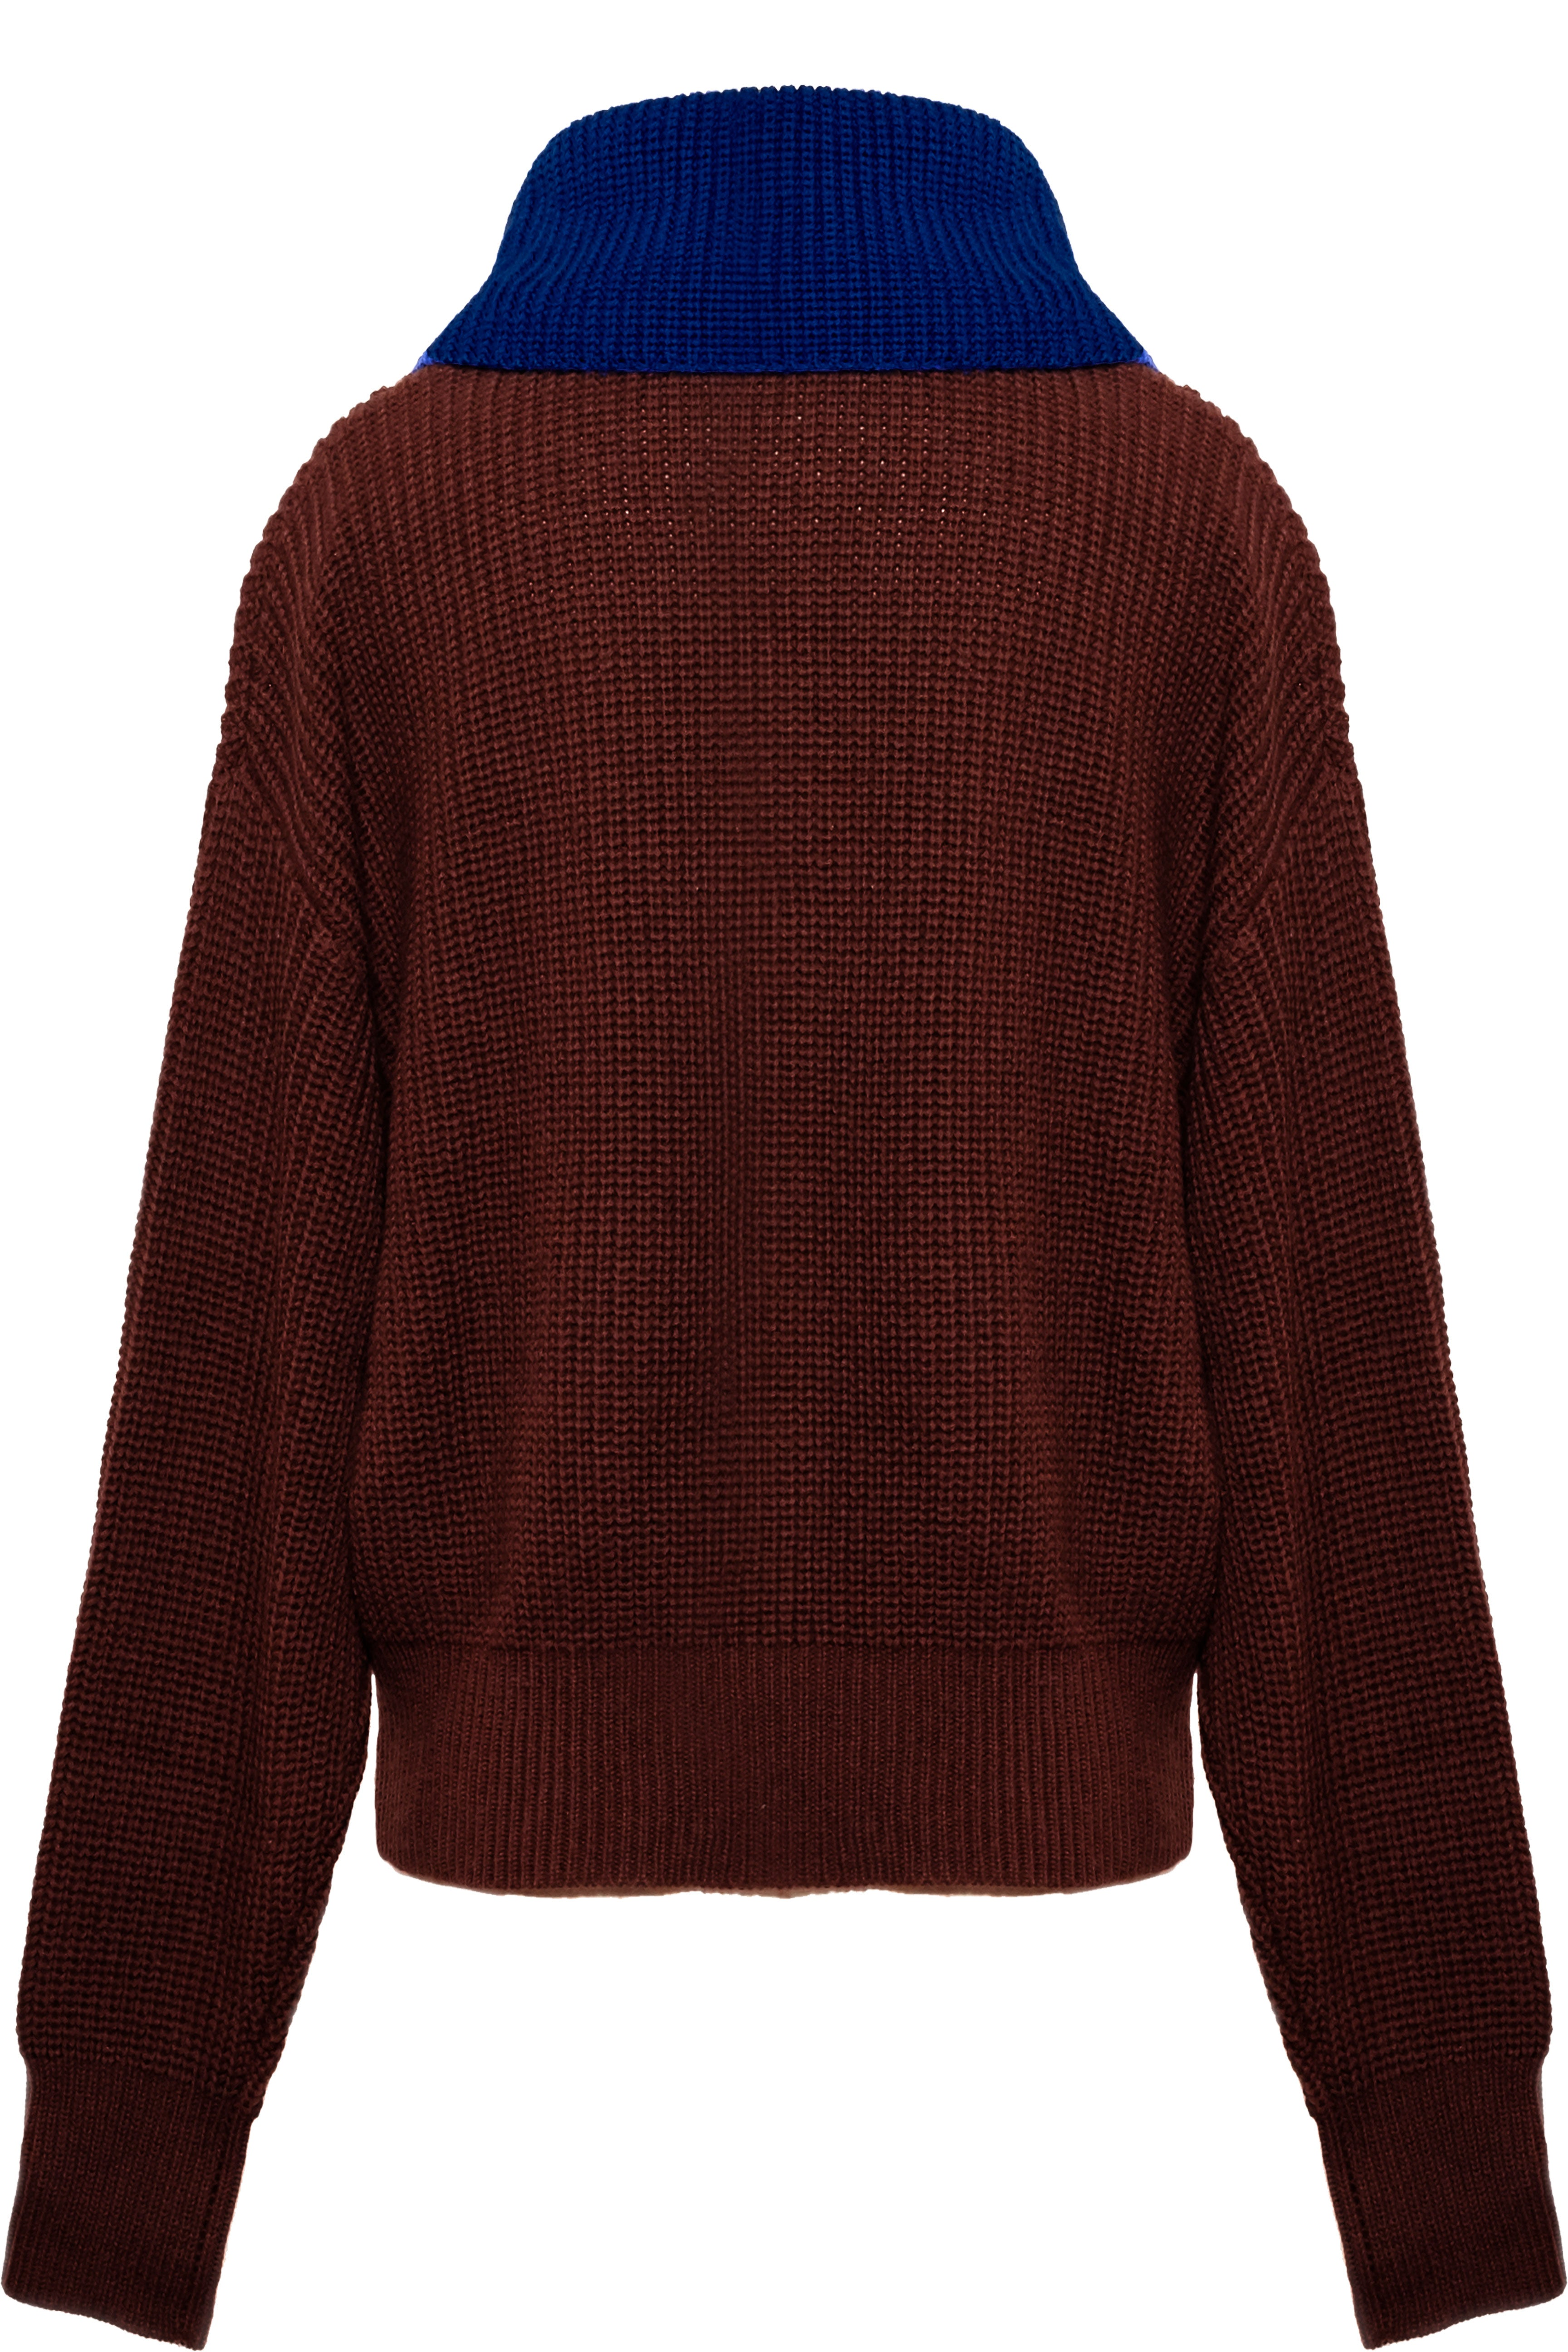 Contrast Fisherman's Sweater - Chocolate